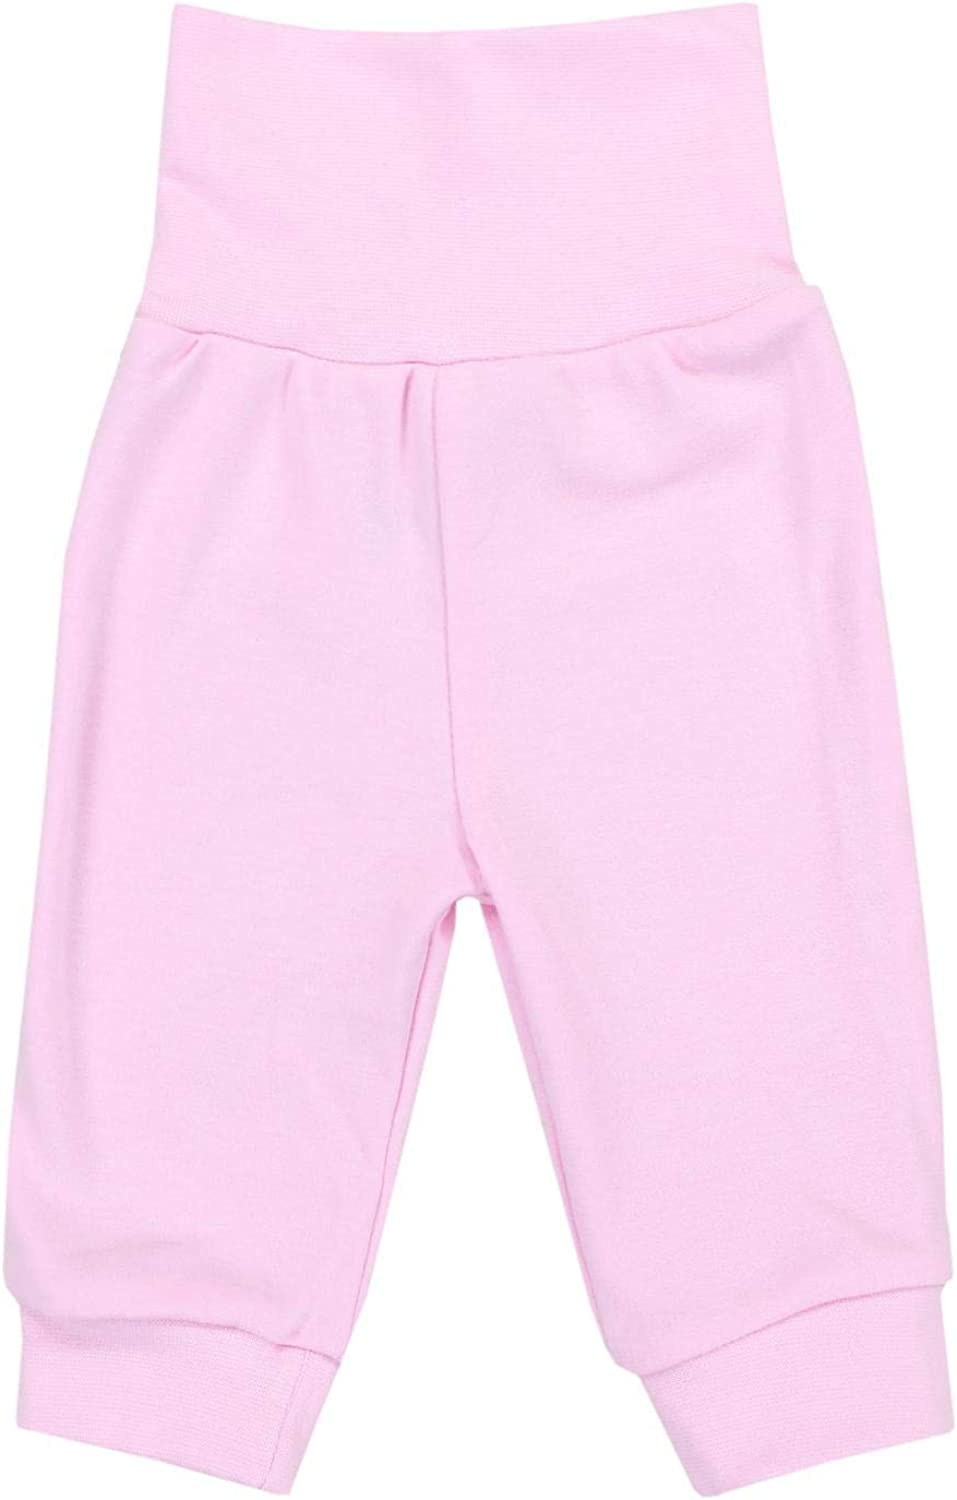 TupTam Baby Girls Long Trousers Pack of 3